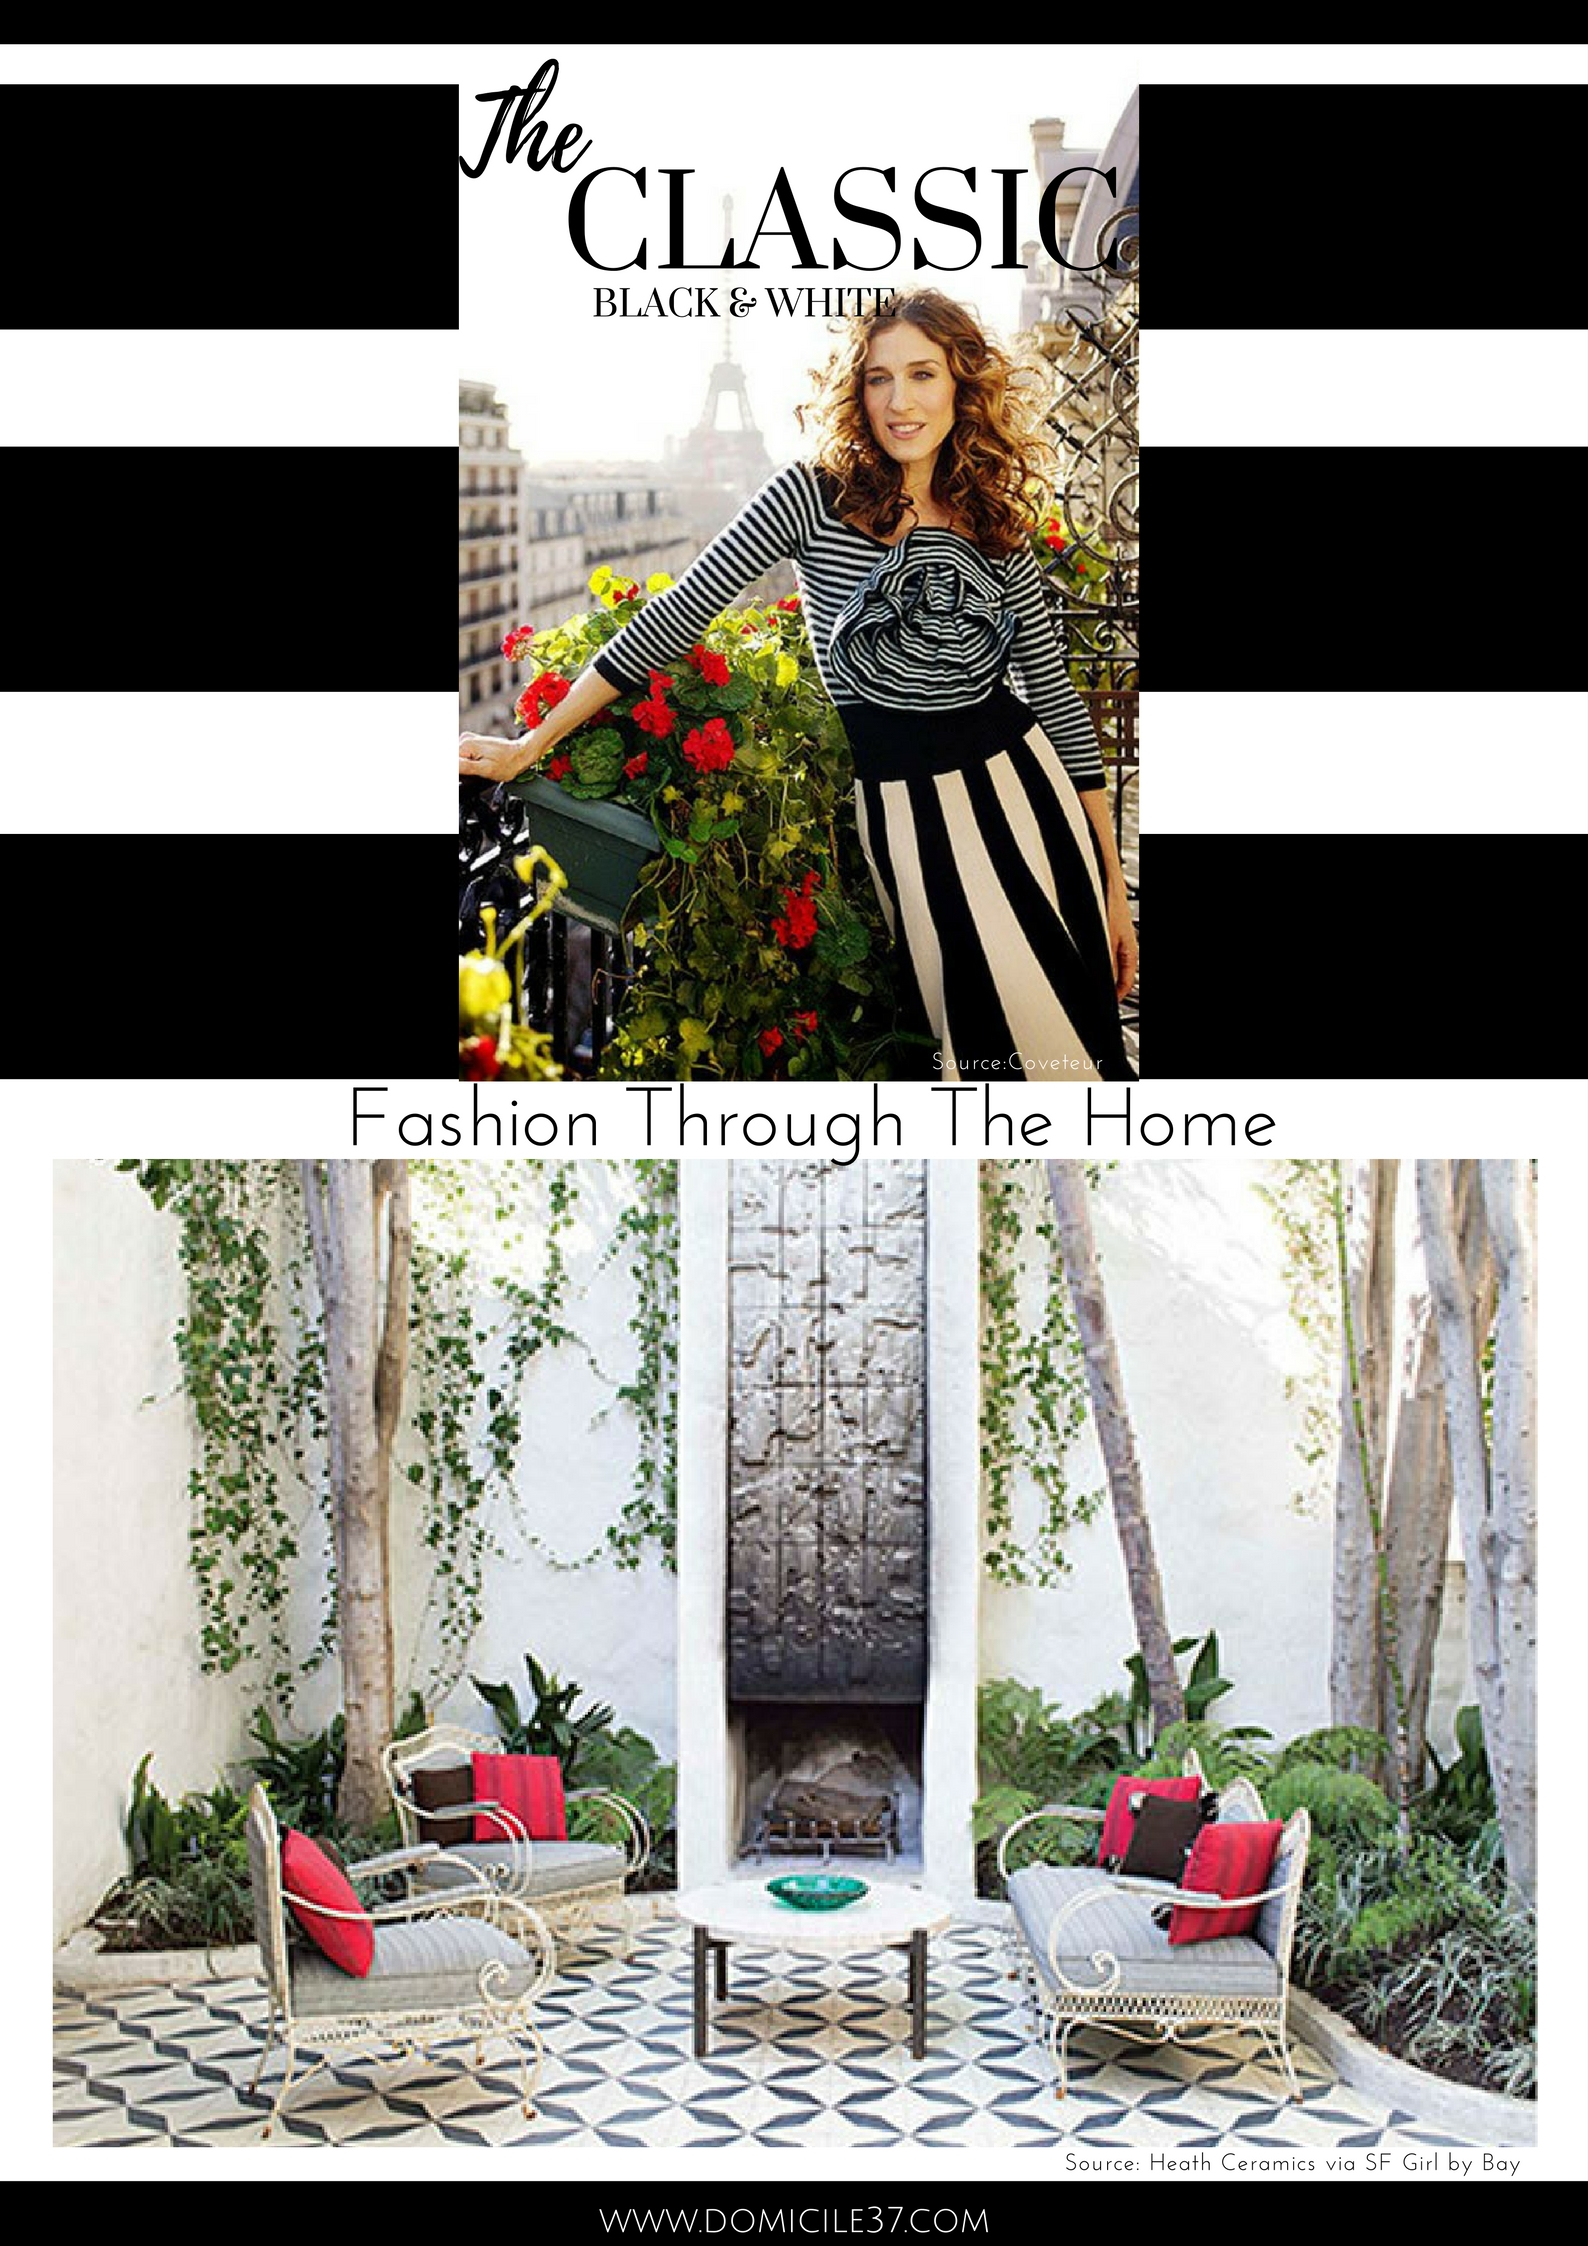 Classic Black and White Decor | Classic Black and white fashion | Sarah Jessica Parker | Black and White courtyard | Black and white stripes